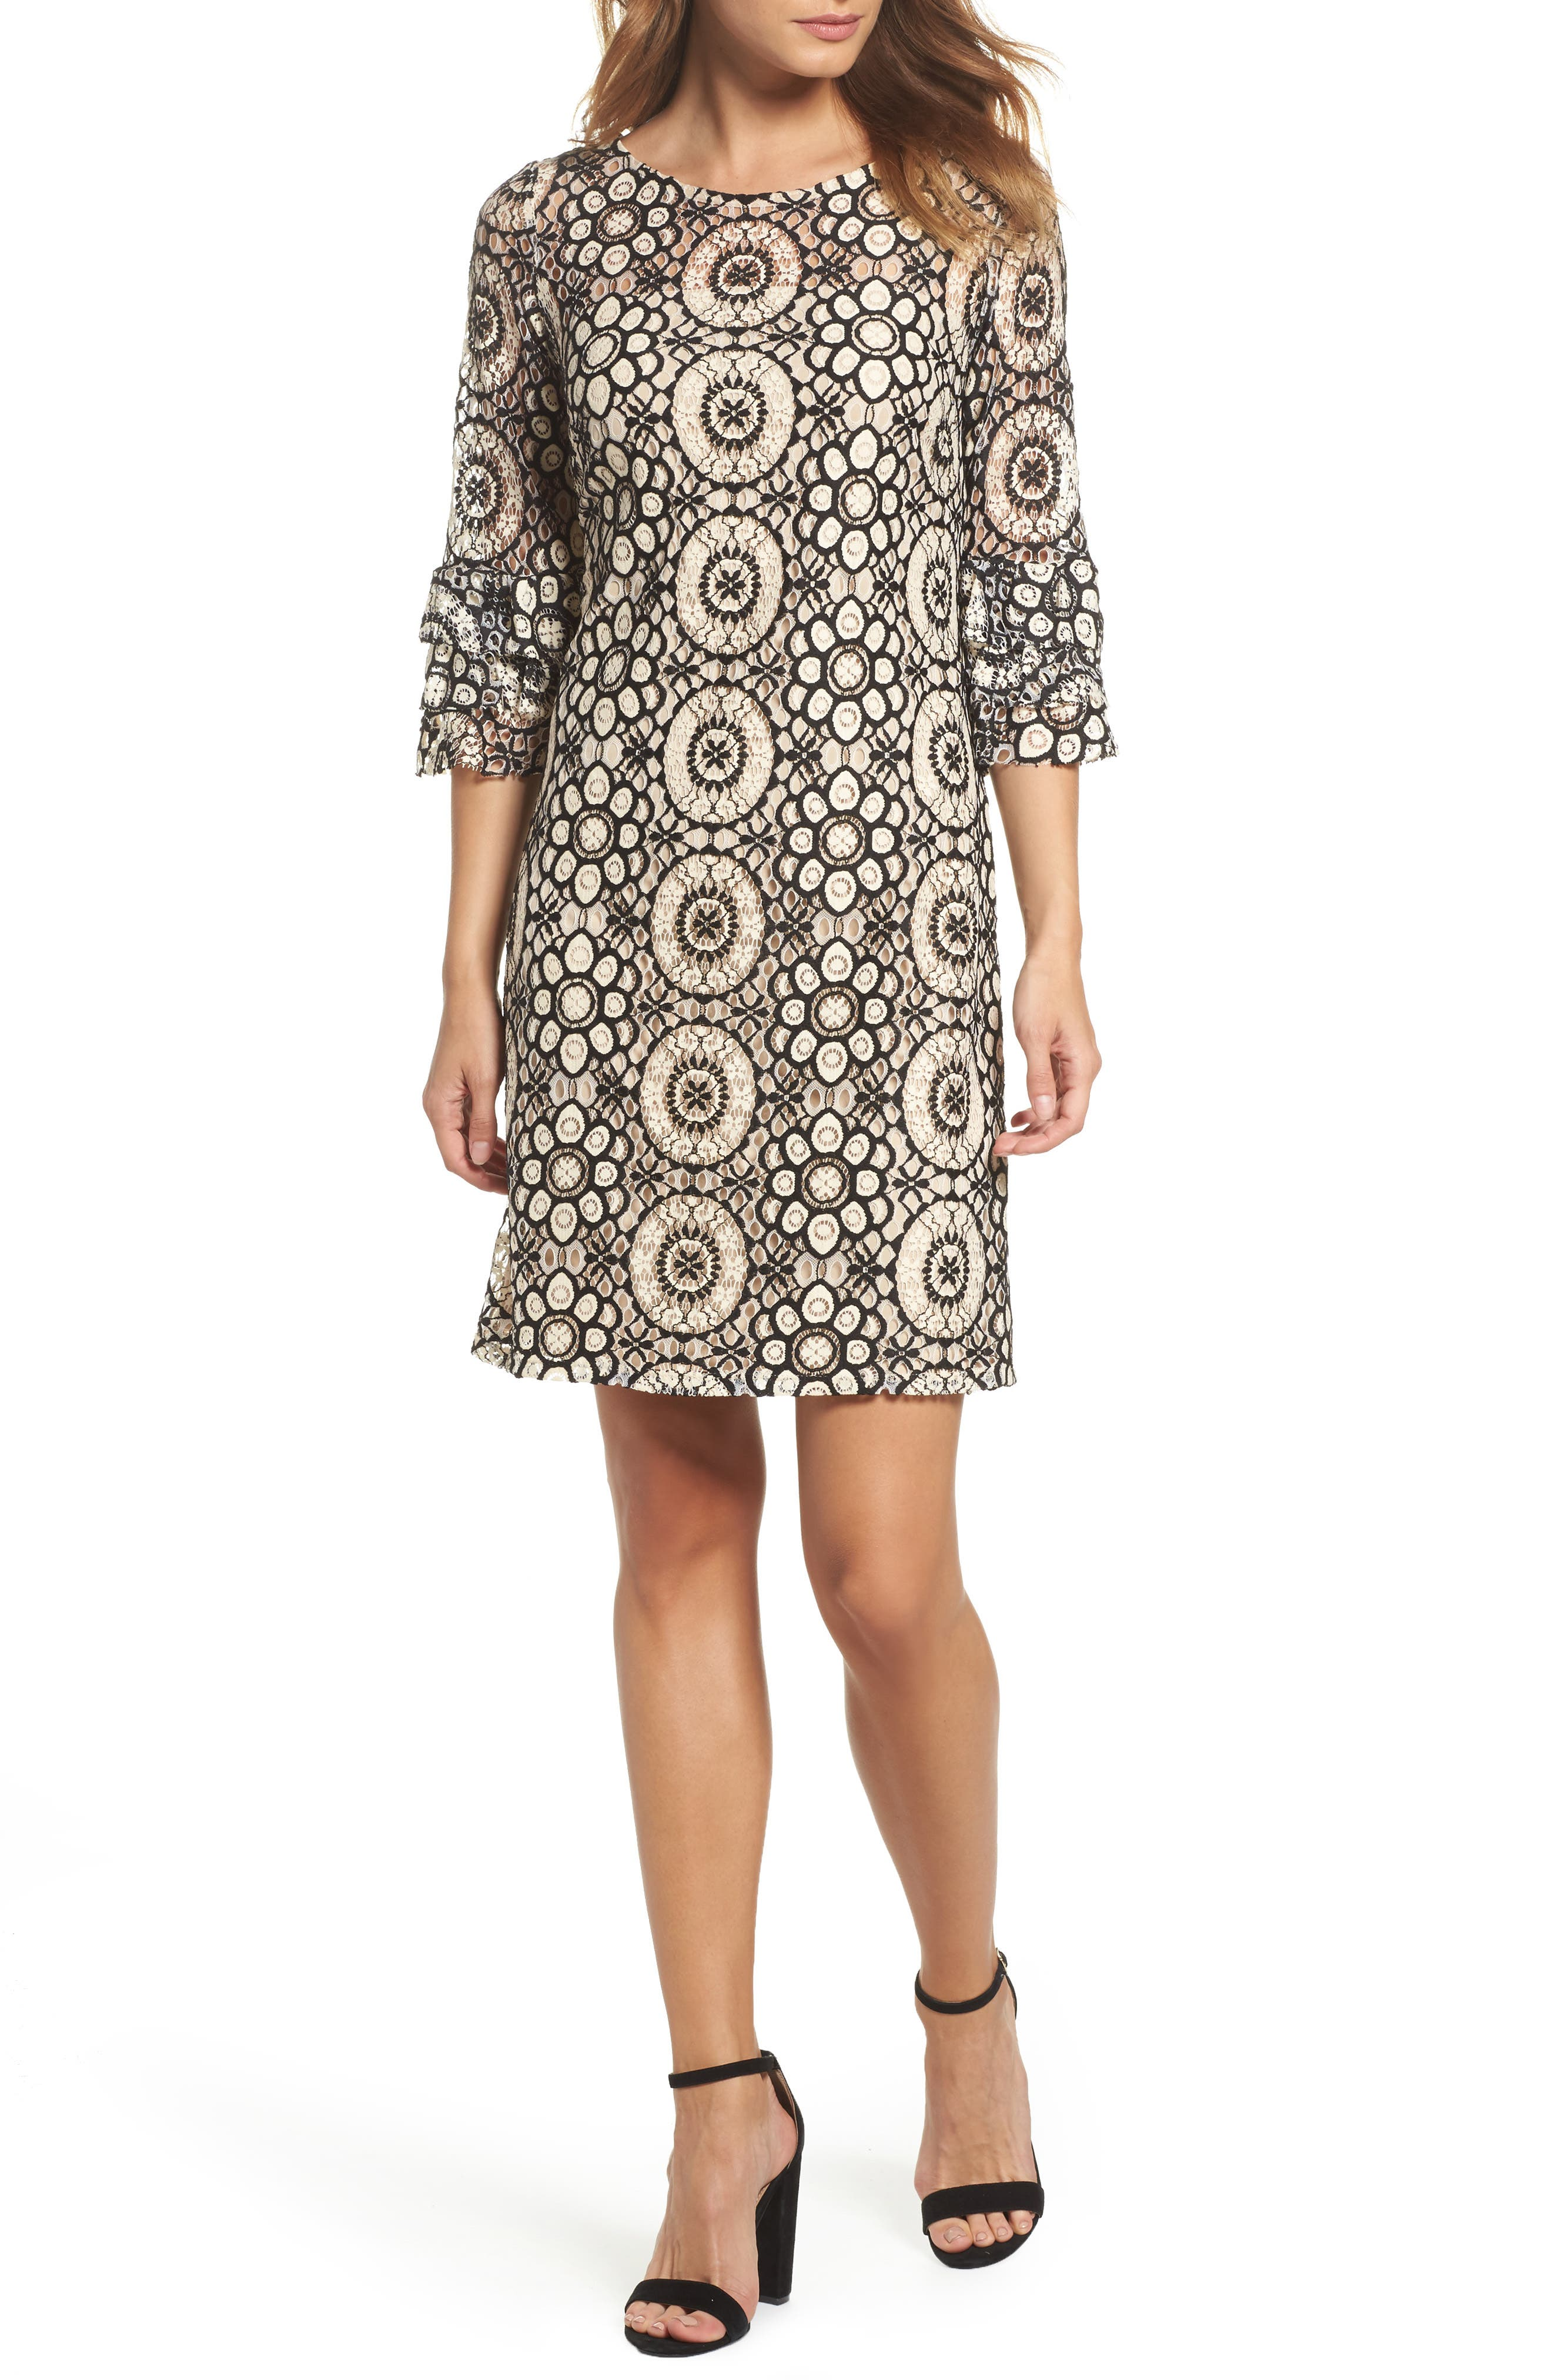 Taylor Dresses Tiered Sleeve Lace Shift Dress